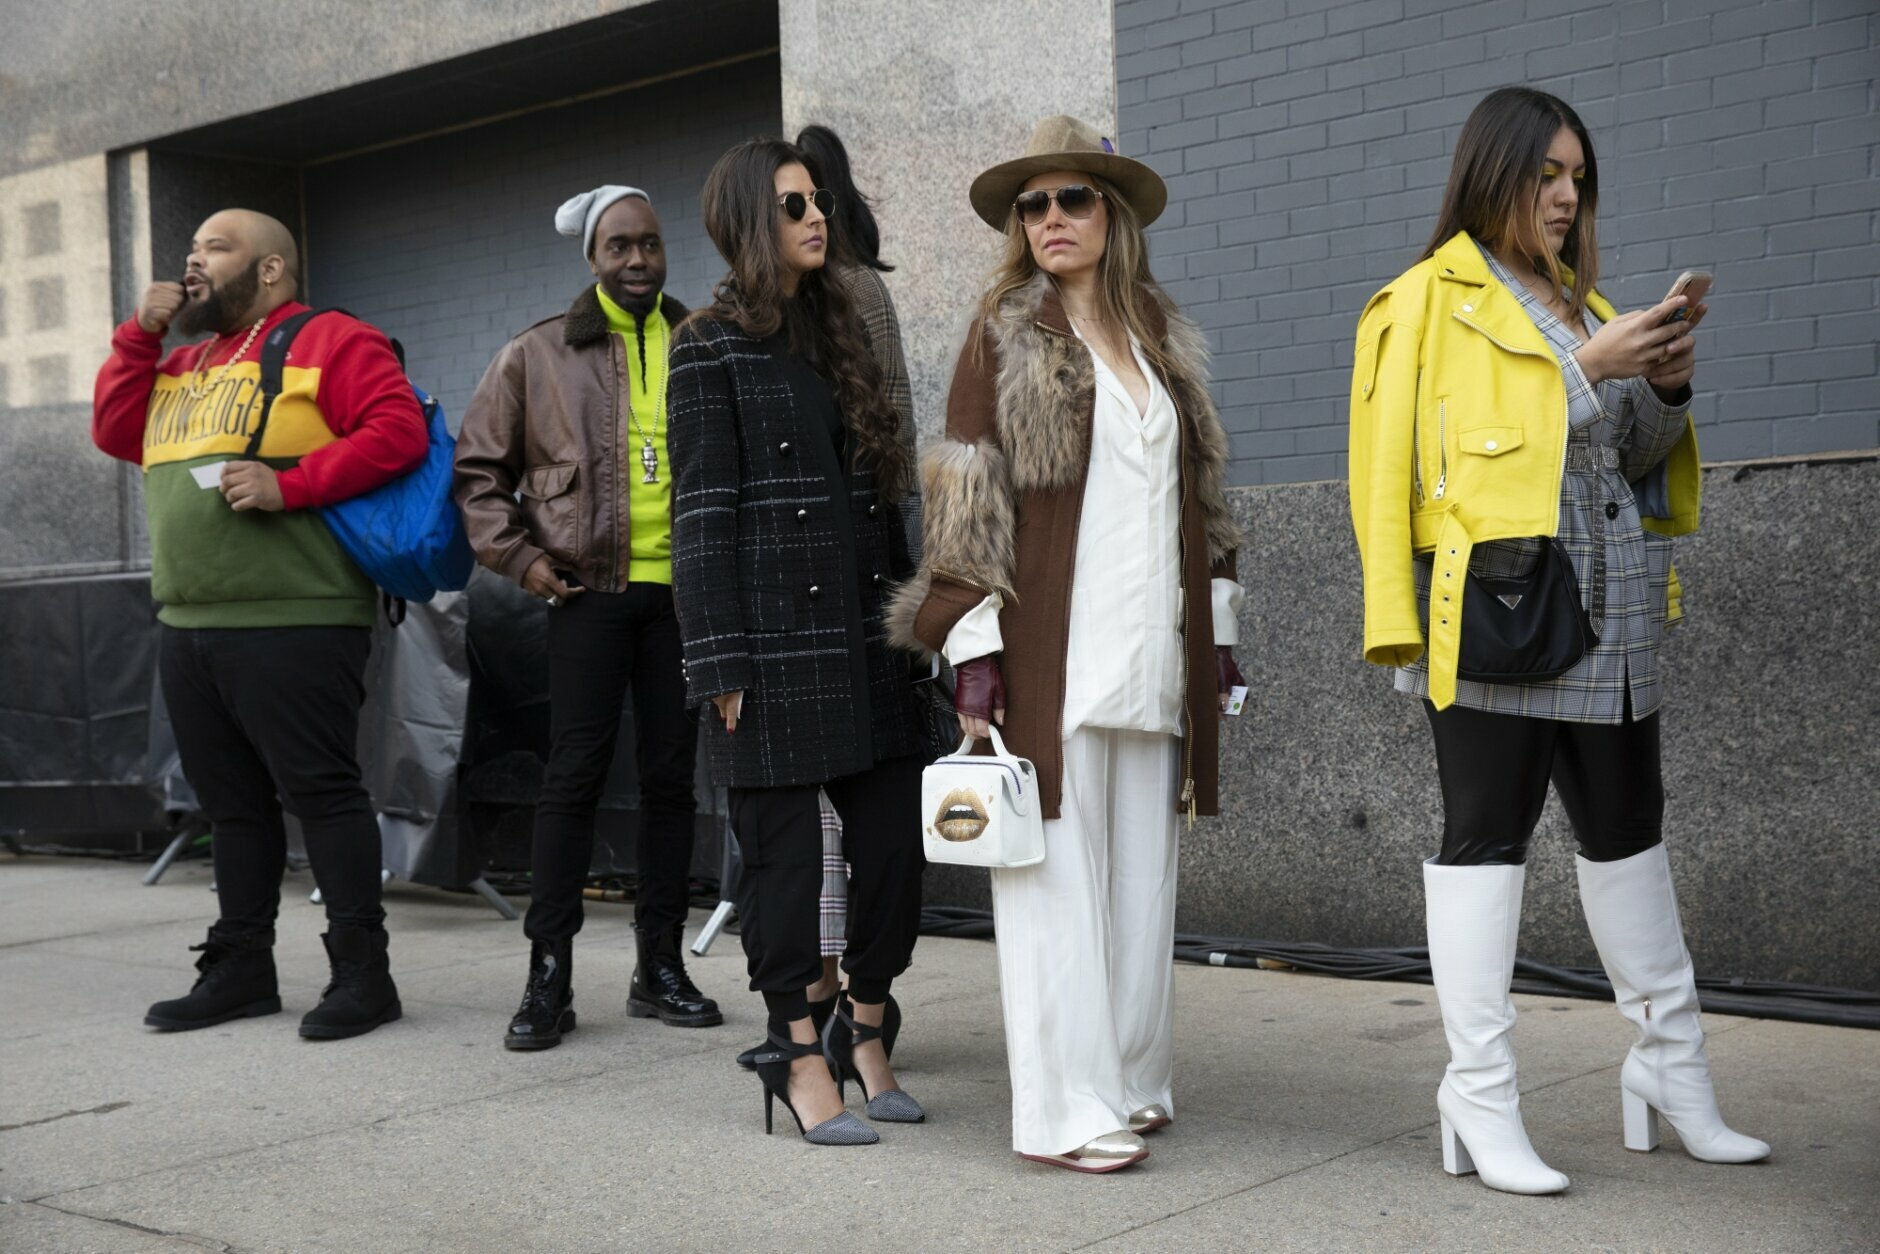 Fashionistas wait in line to enter a show during Fashion Week, Wednesday, Feb. 12, 2020, in New York. (AP Photo/Mark Lennihan)